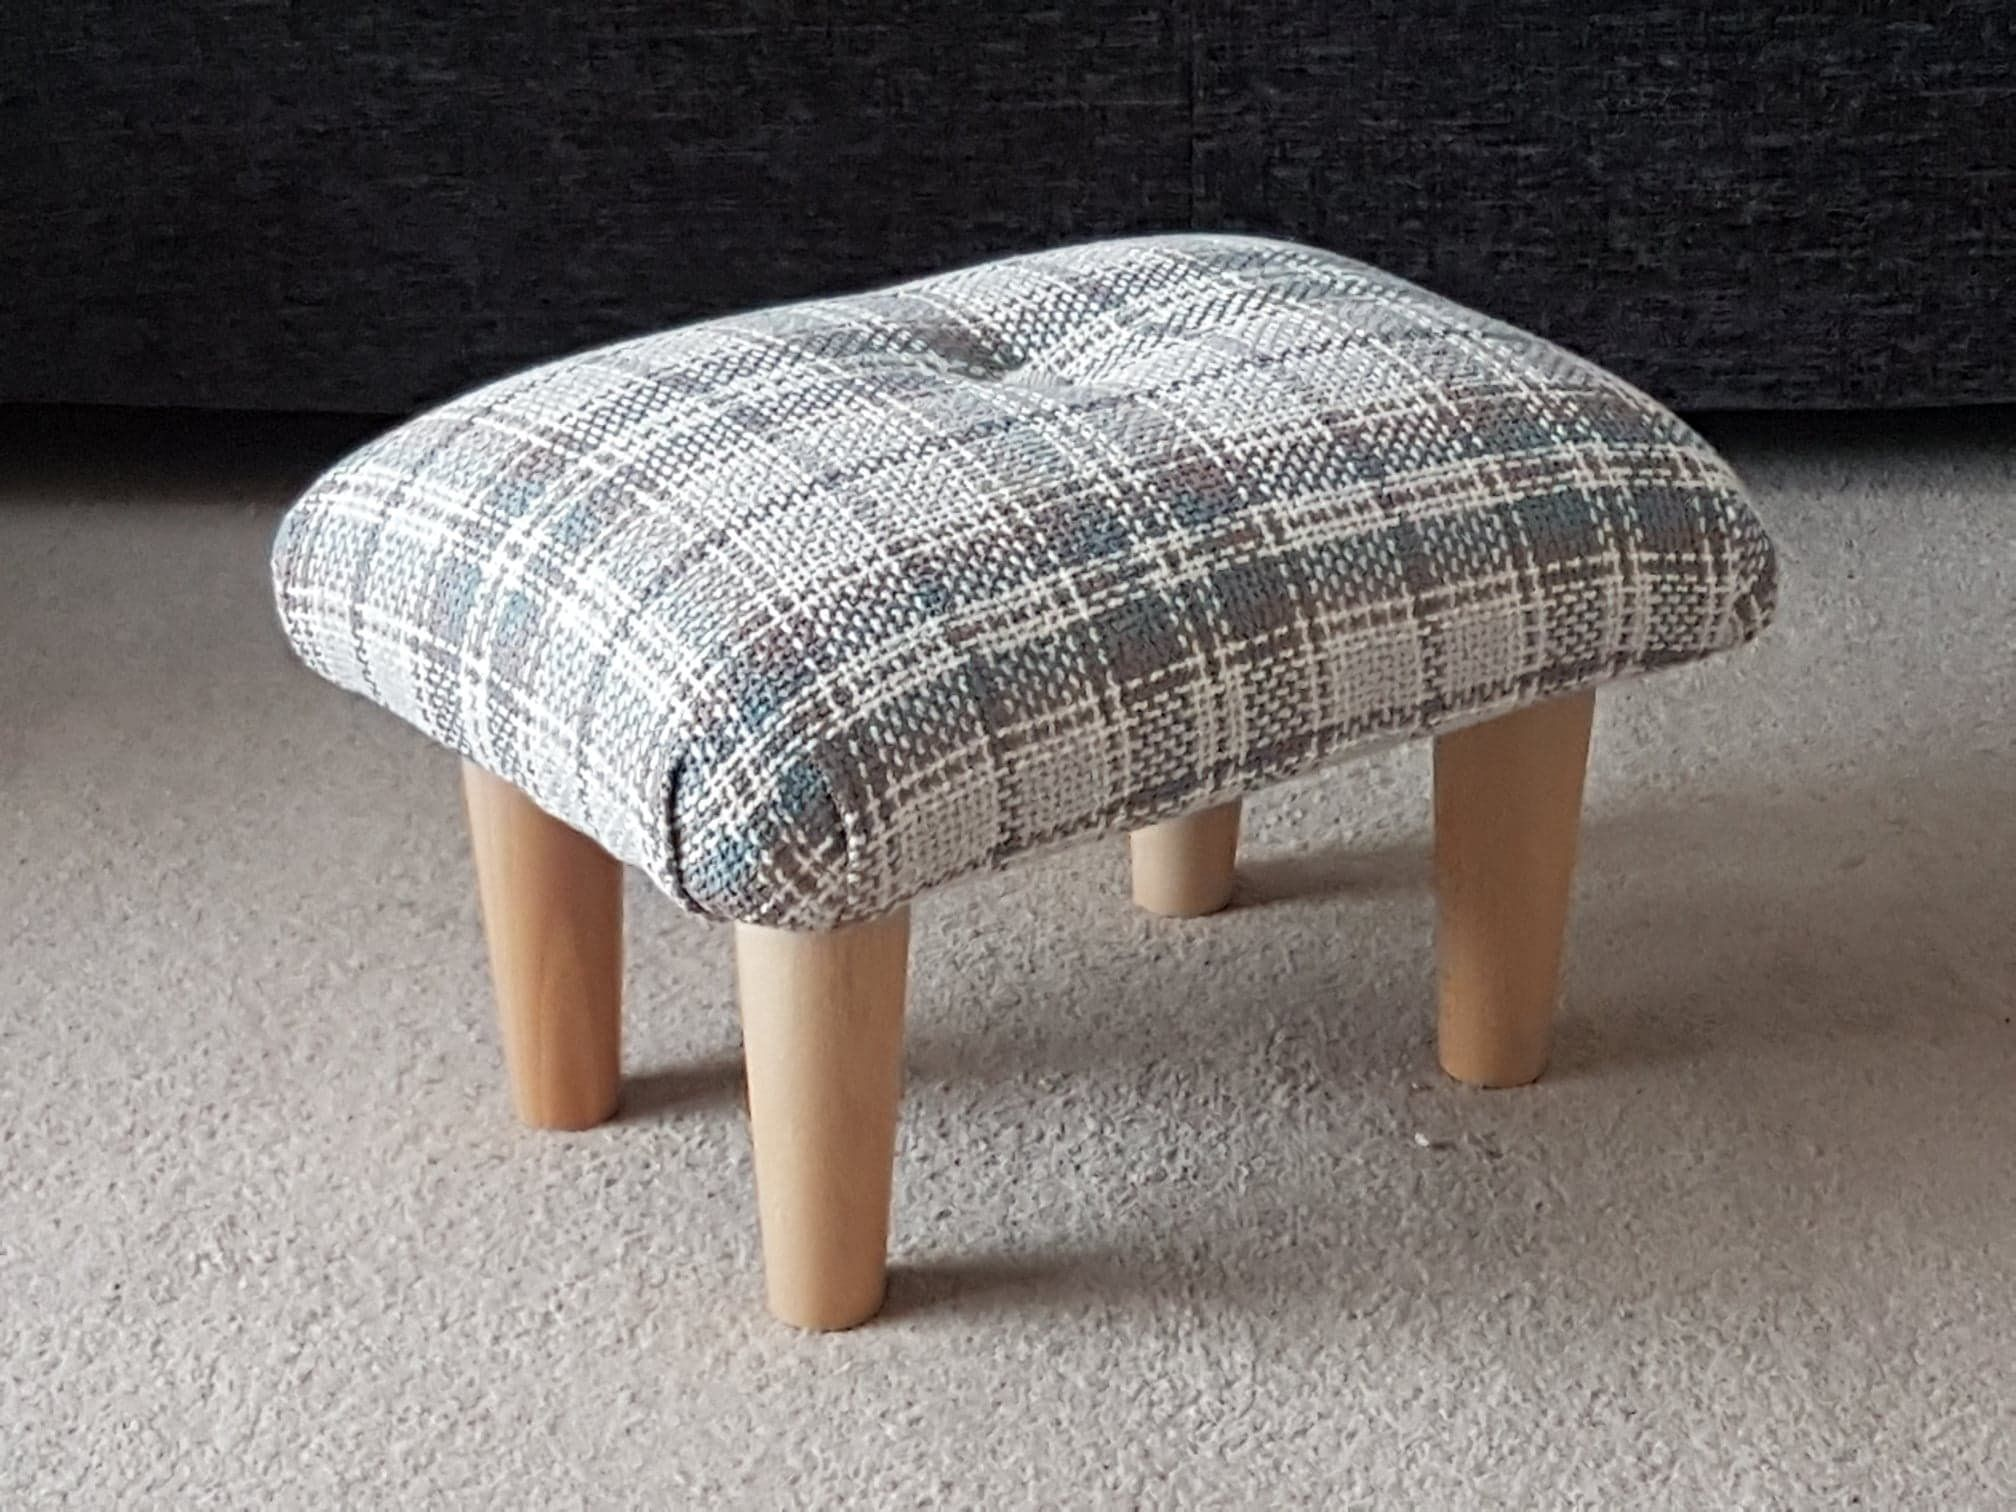 Small Footstool Upholstered Footstool Gift Idea Small Foot Stool Upholstered Foot Stool Handmade Foot